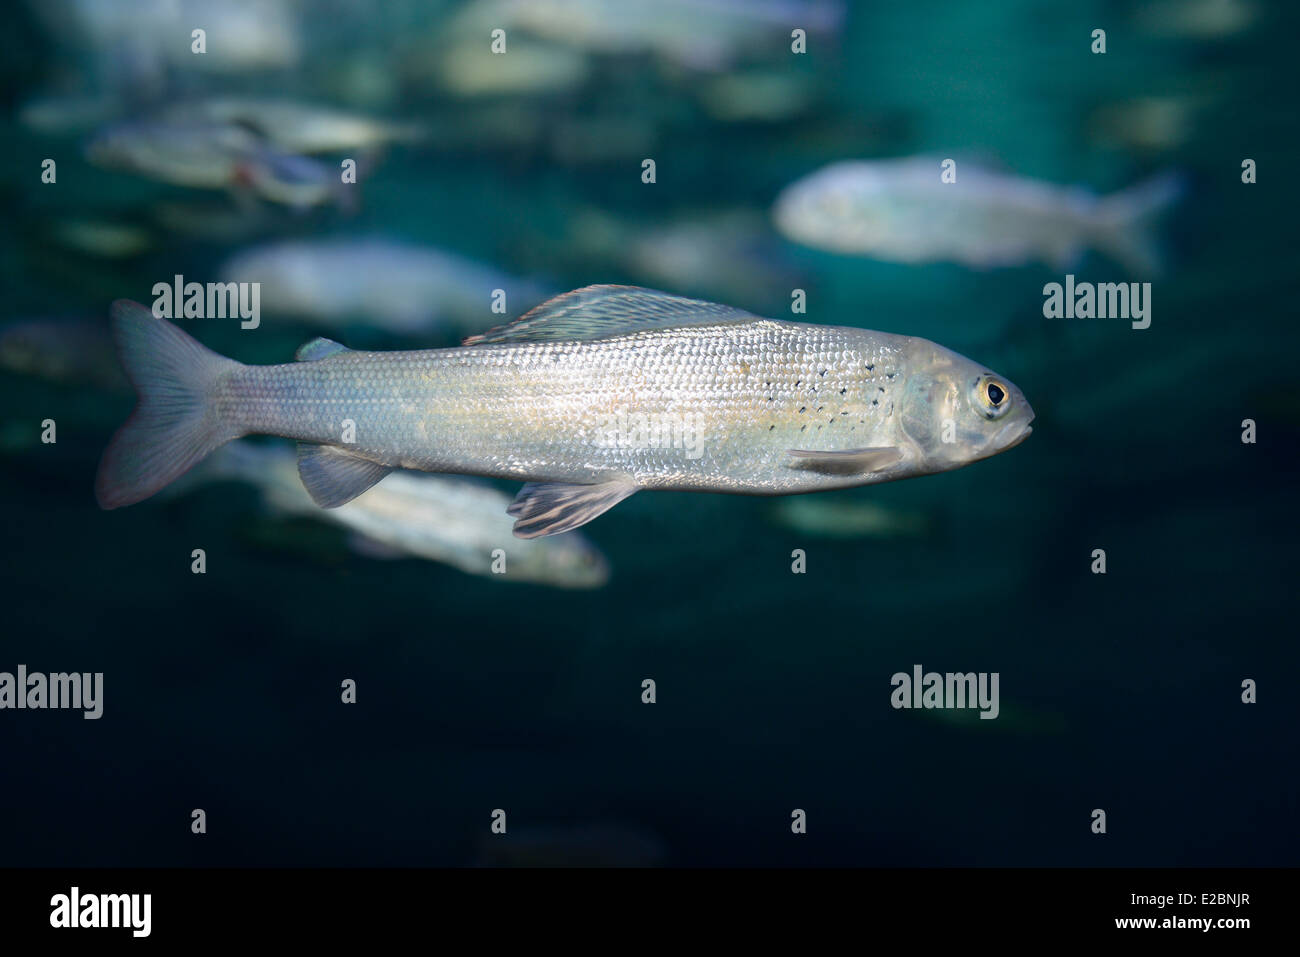 Fish aquarium in downtown toronto - Arctic Grayling Cold Freshwater Fish Swimming Underwater In Ripleys Aquarium Toronto Stock Image